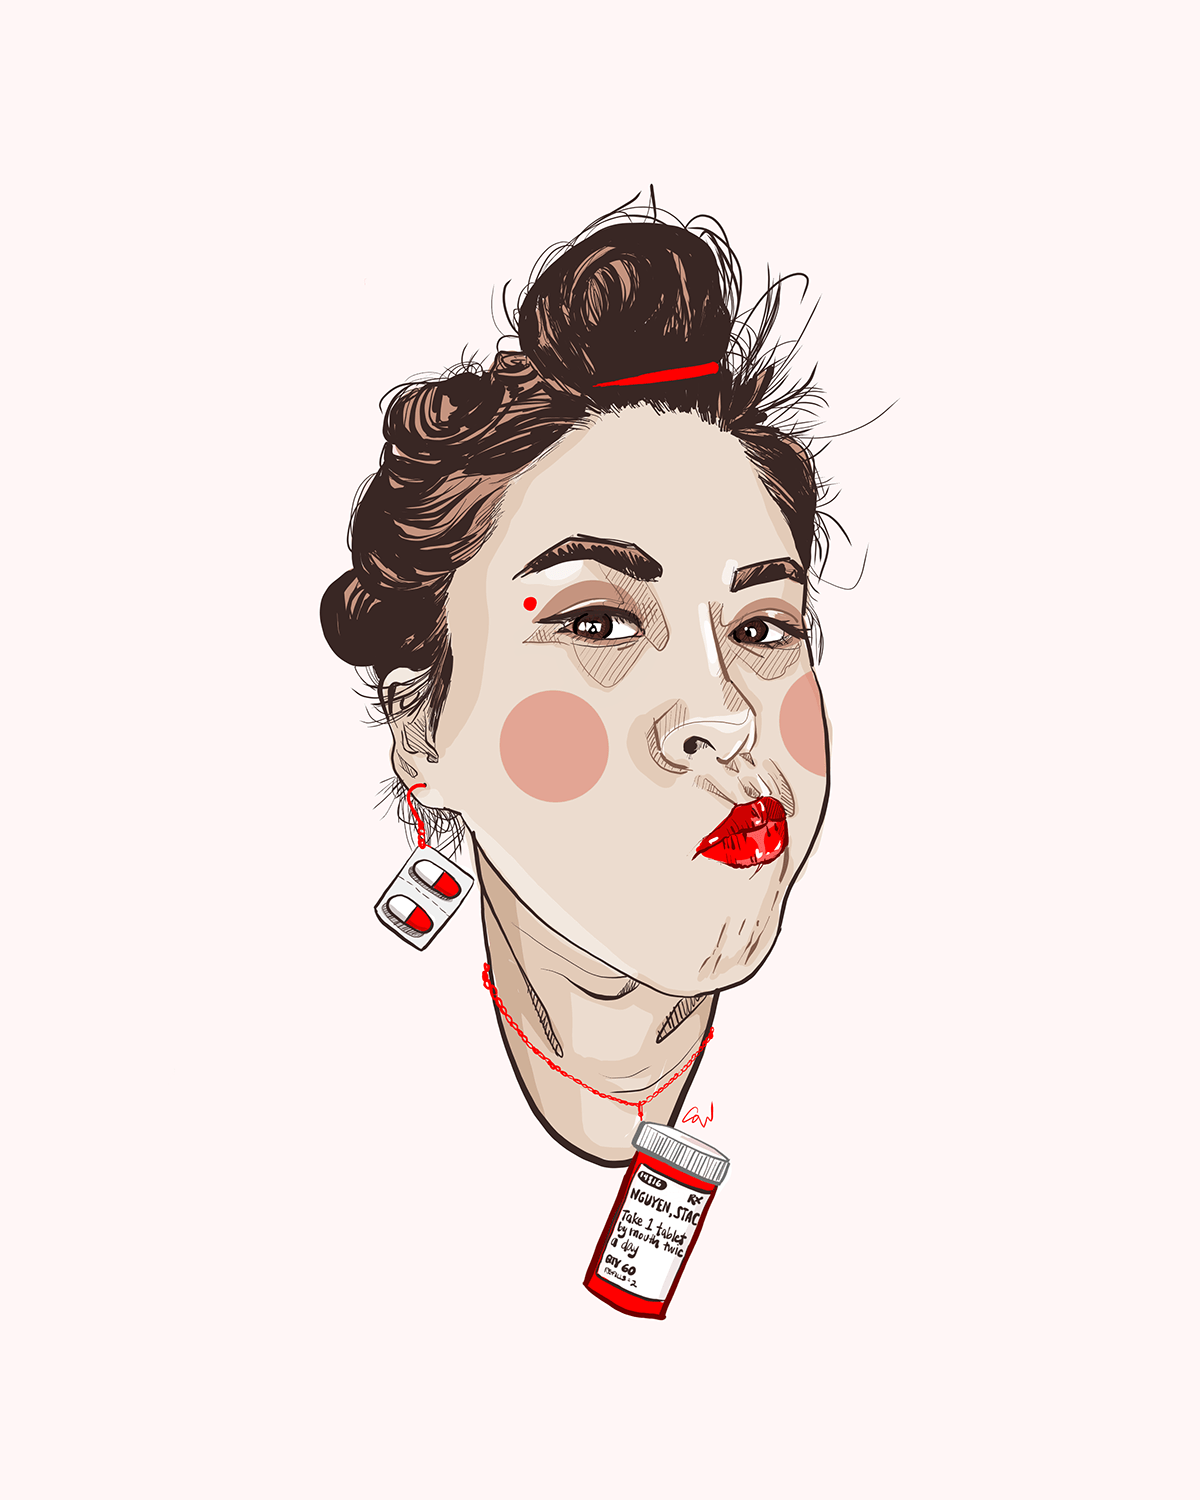 Self Portrait of Vietnamese American woman with red lipstick